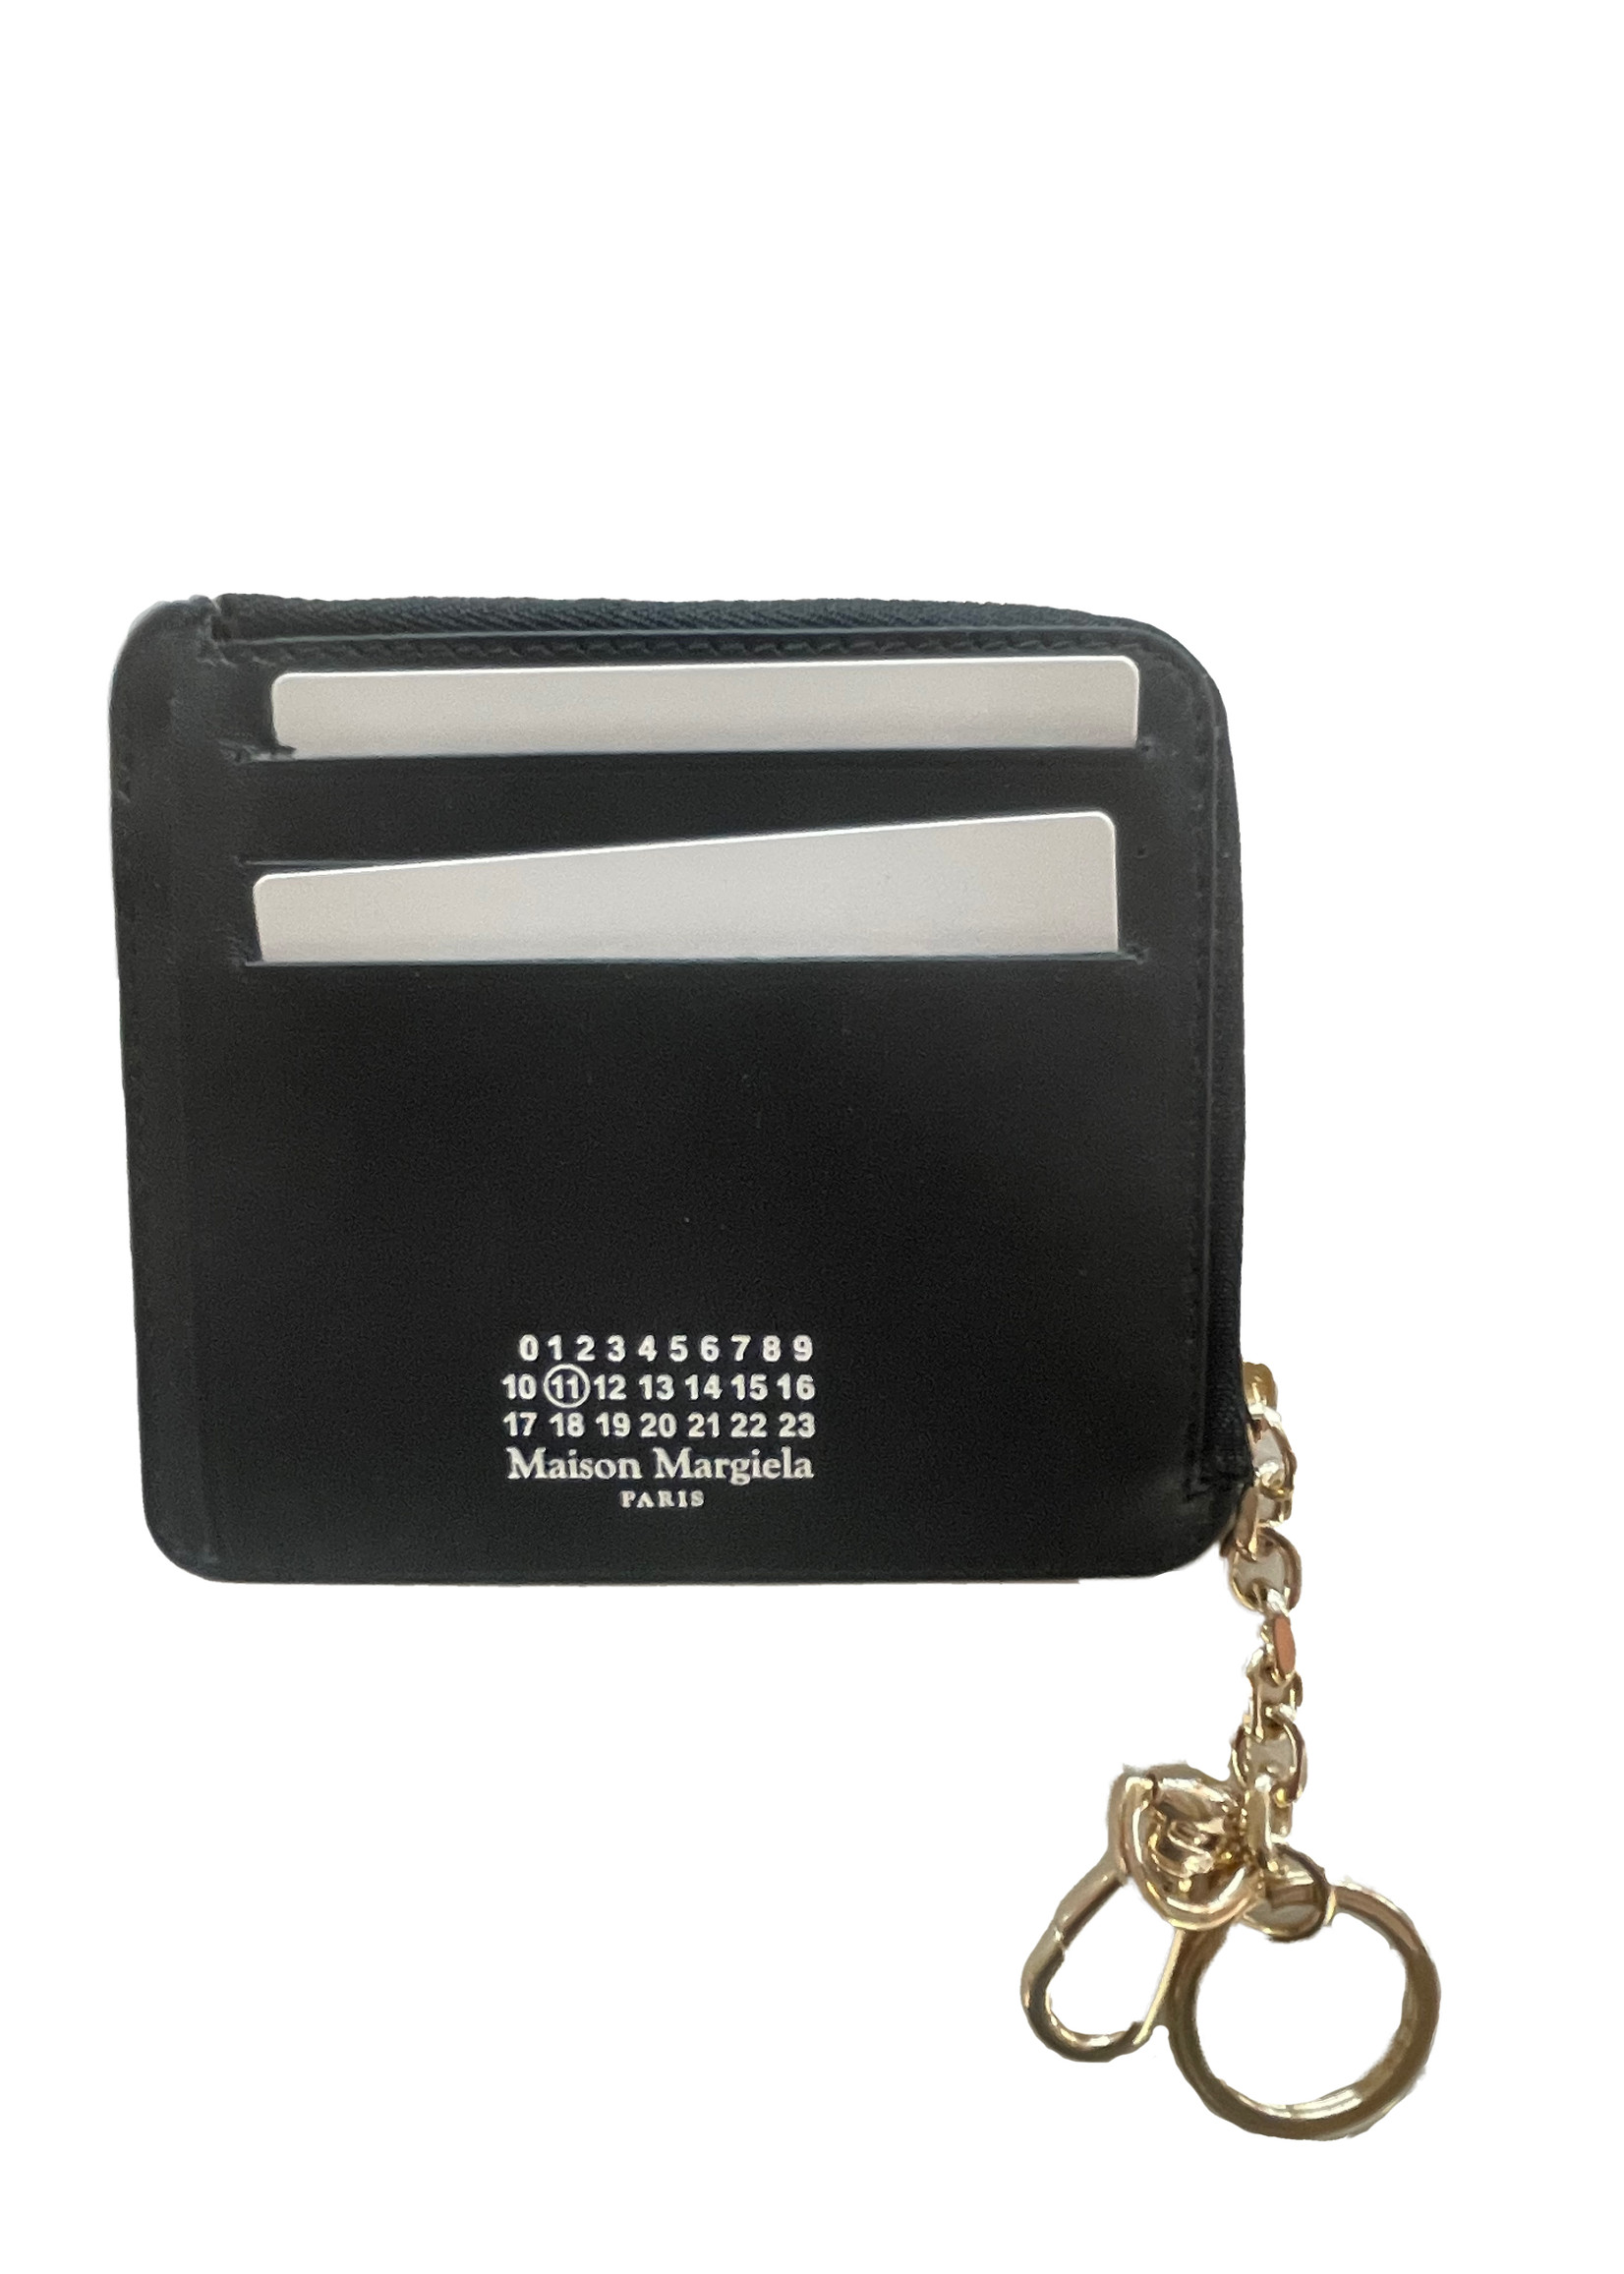 Maison Margiela Zip Wallet with Keychain in Black and Gold